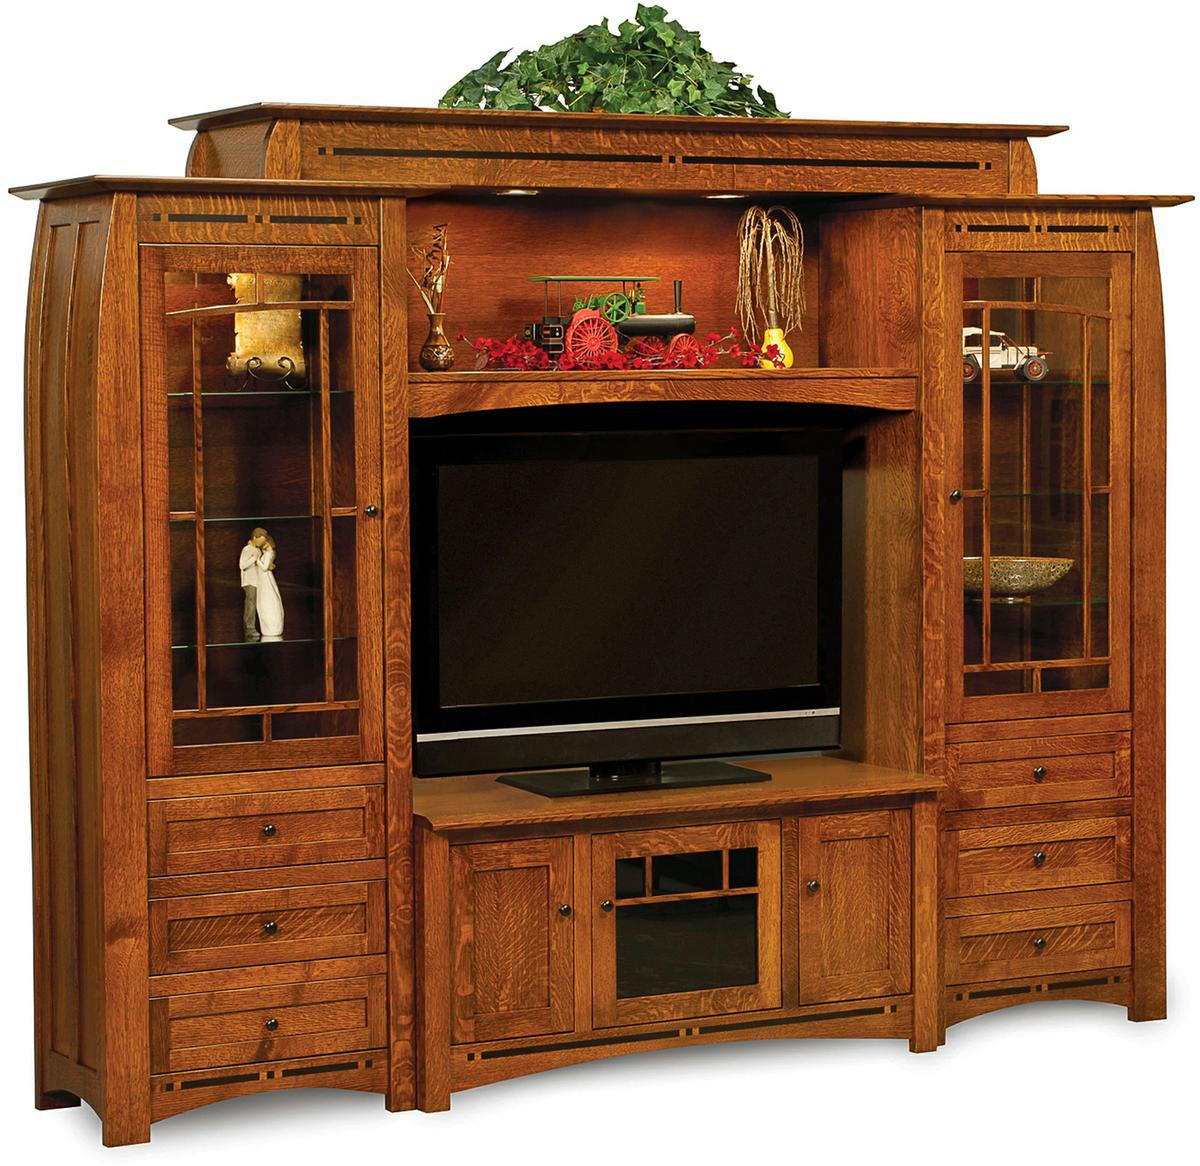 Dvd Storage Units Roll Over On Above Image To View It 815 Cddvd Storage Unit Stylish Oak Dvd